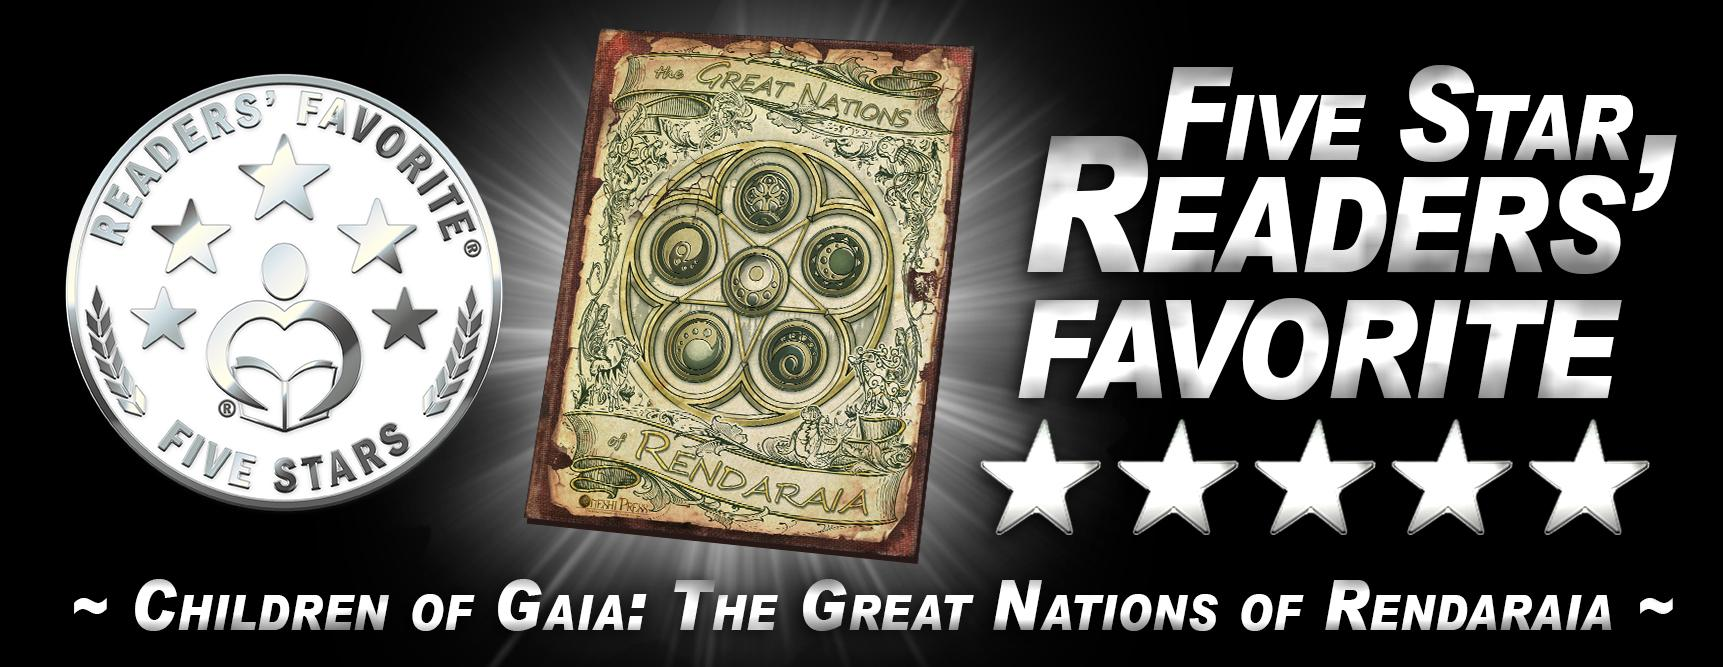 """Children of Gaia: The Great Nations"" of Rendaraia is a Five Star Readers' Favorite!"